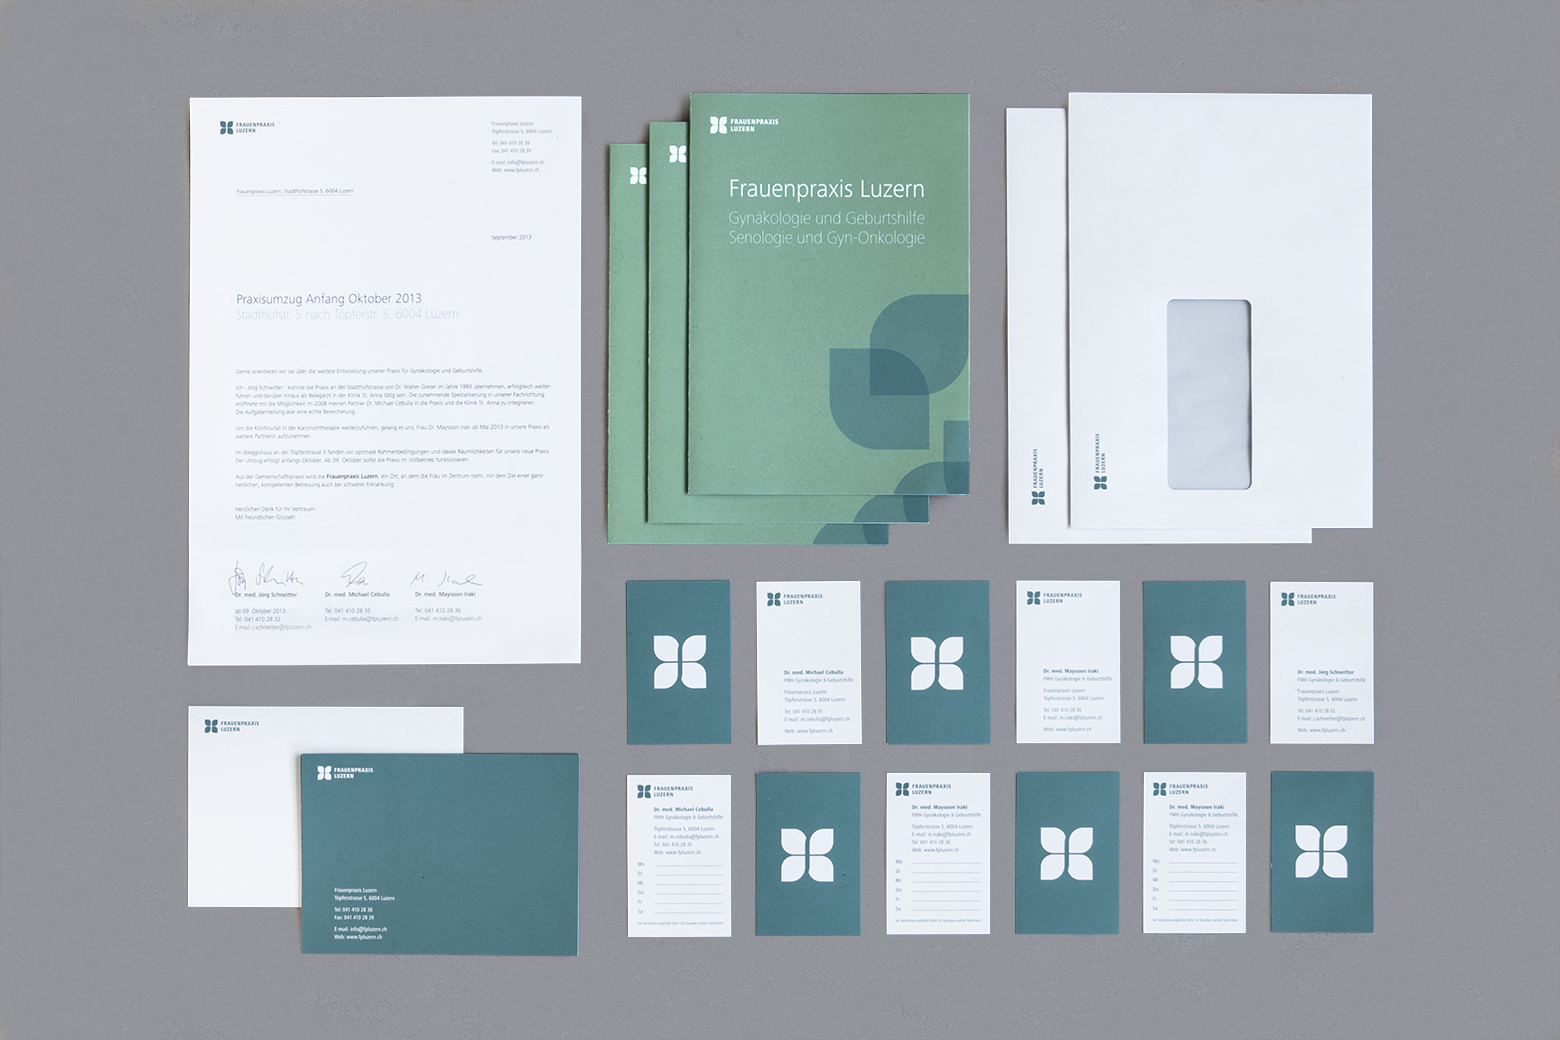 frauenpraxis_luzern_stationery@2x